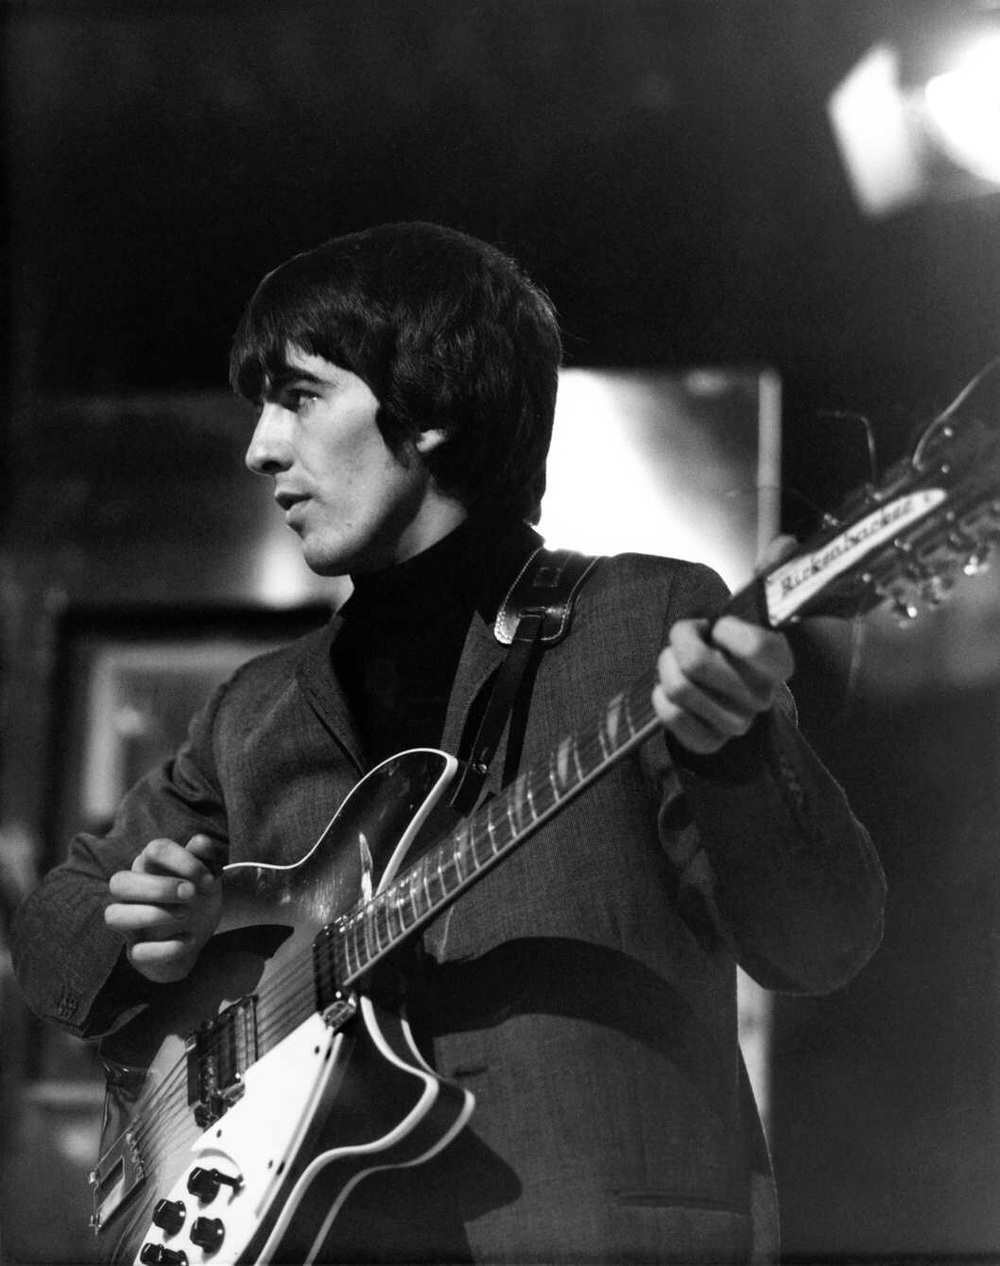 George Harrison on stage, circa 1964